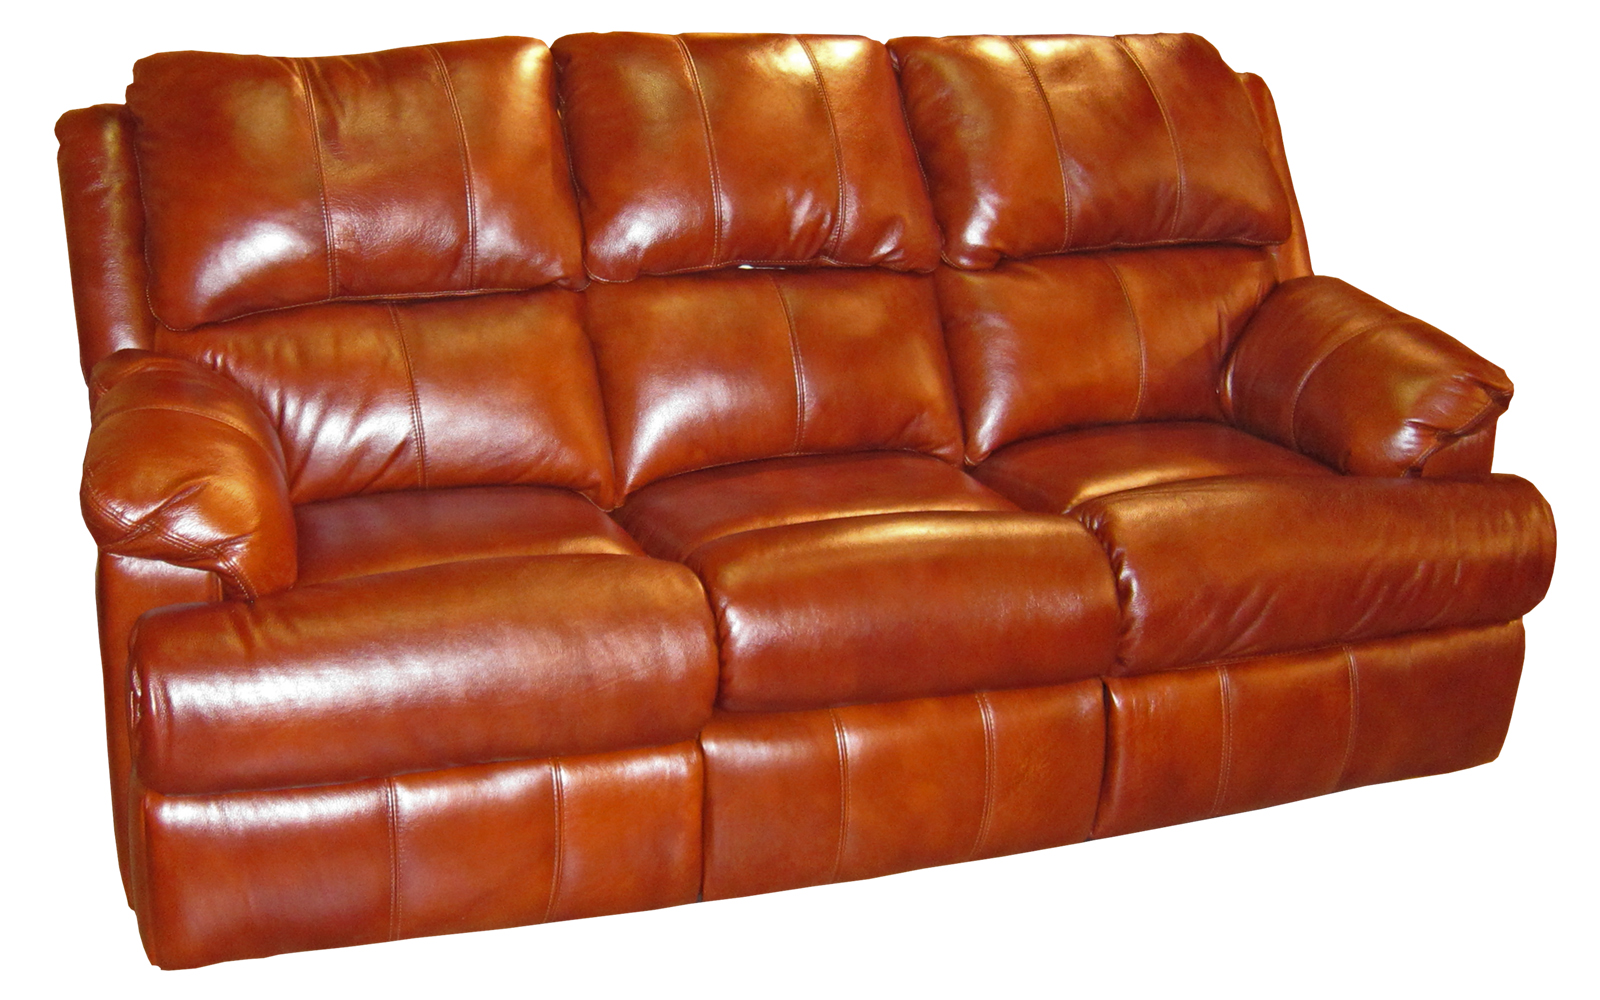 Arizona leather interiors for Arizona leather sectional sofa with chaise